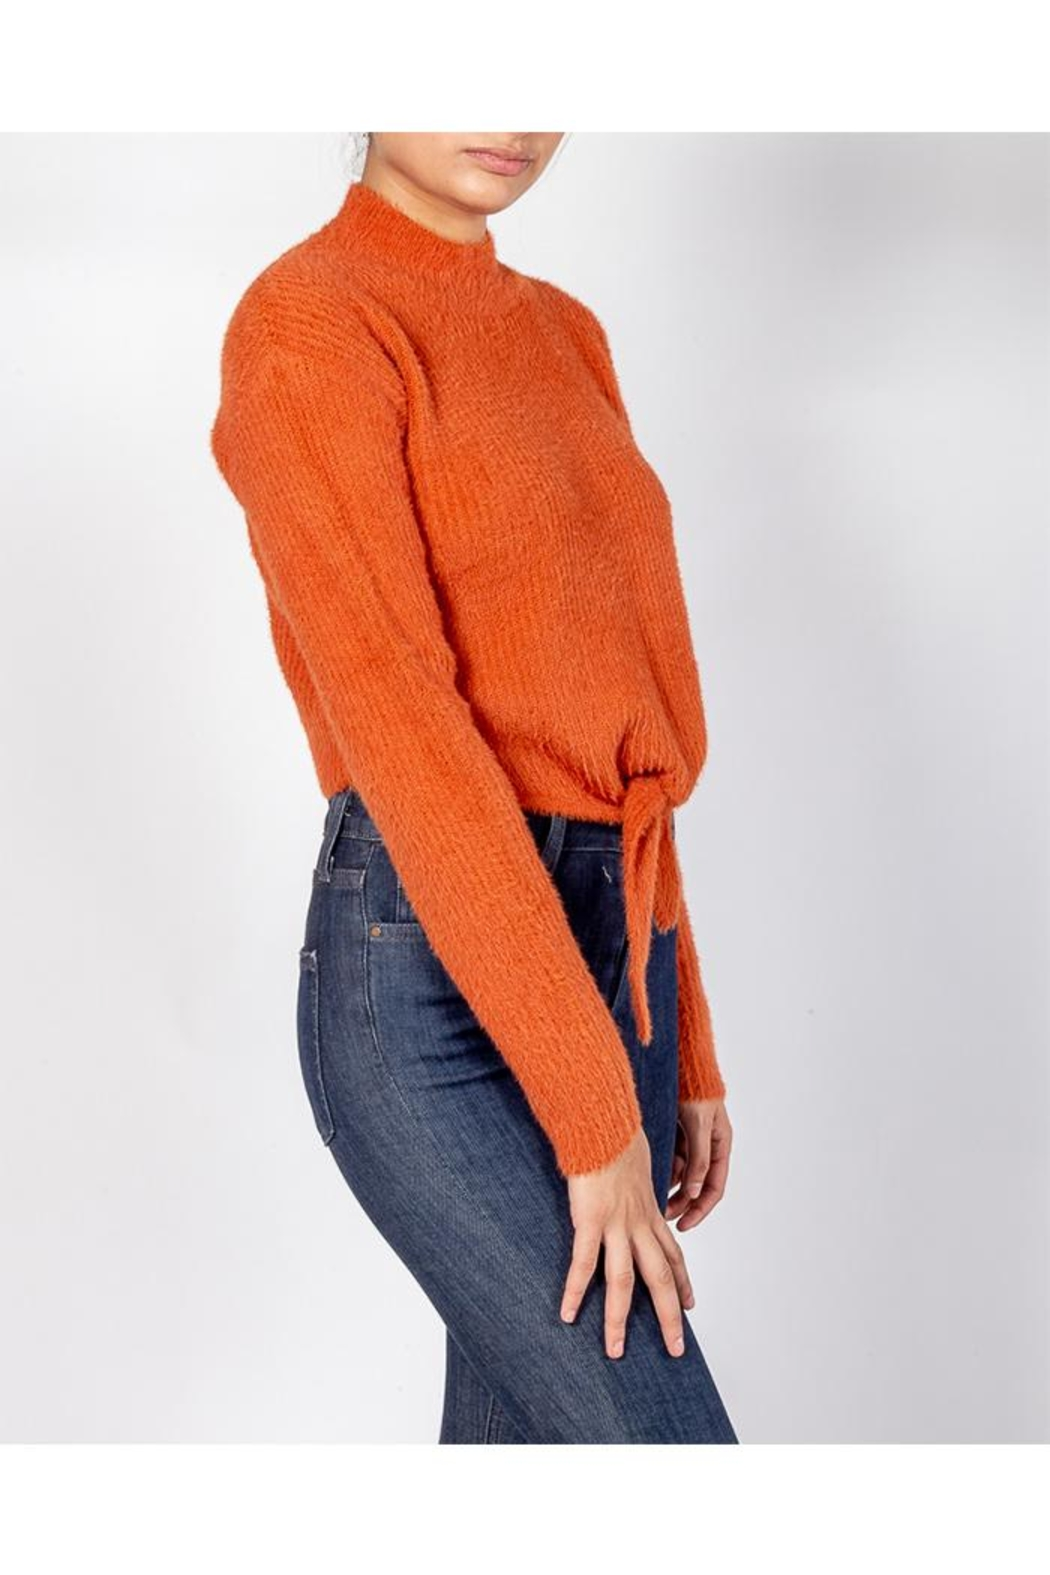 Cotton Candy Soft Front-Tie Sweater - Front Full Image